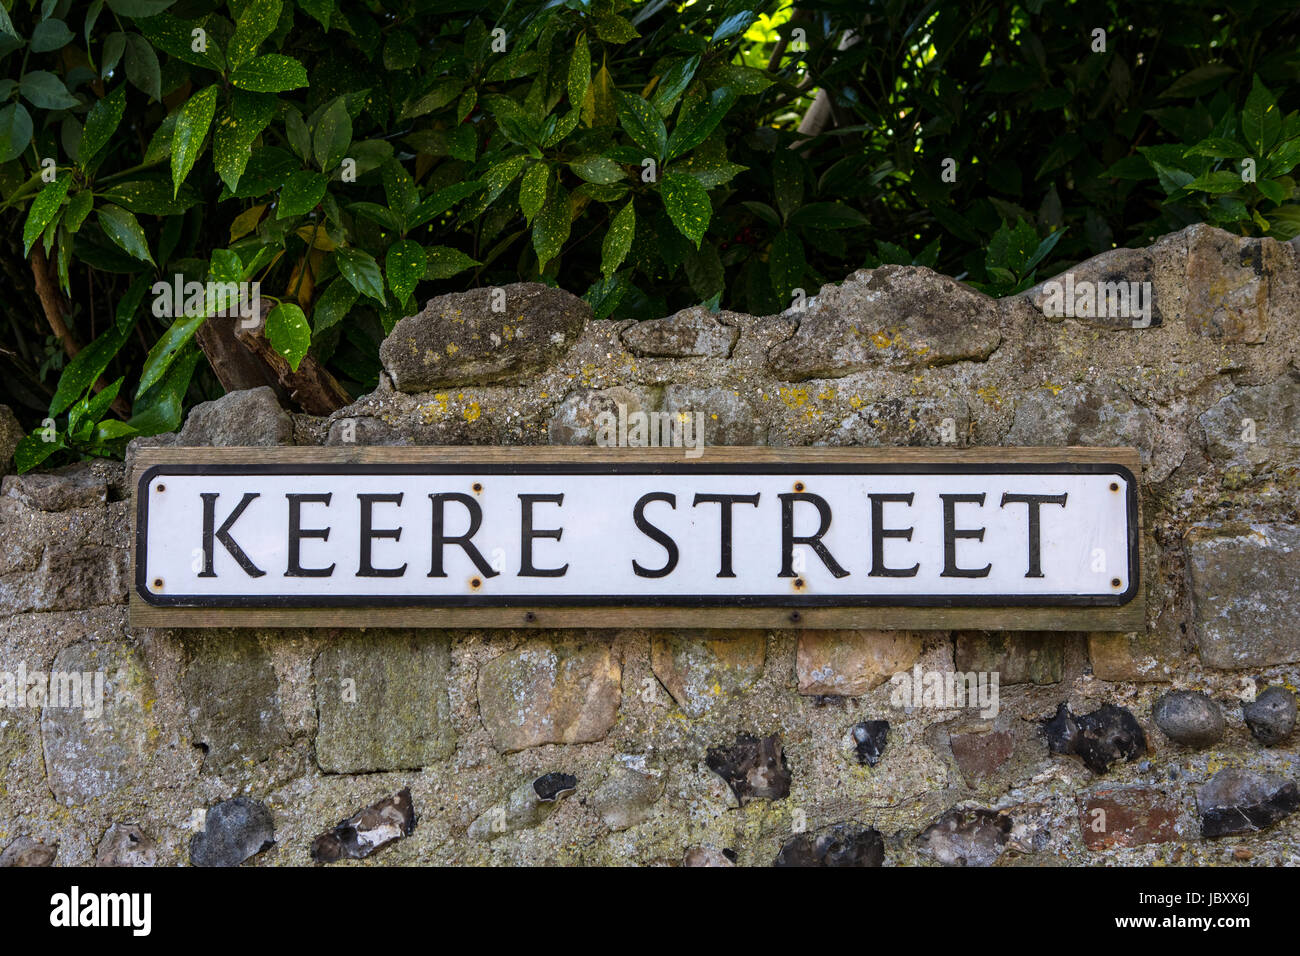 A street sign for Keere Street in the historic town of Lewes in East Sussex, UK. Stock Photo